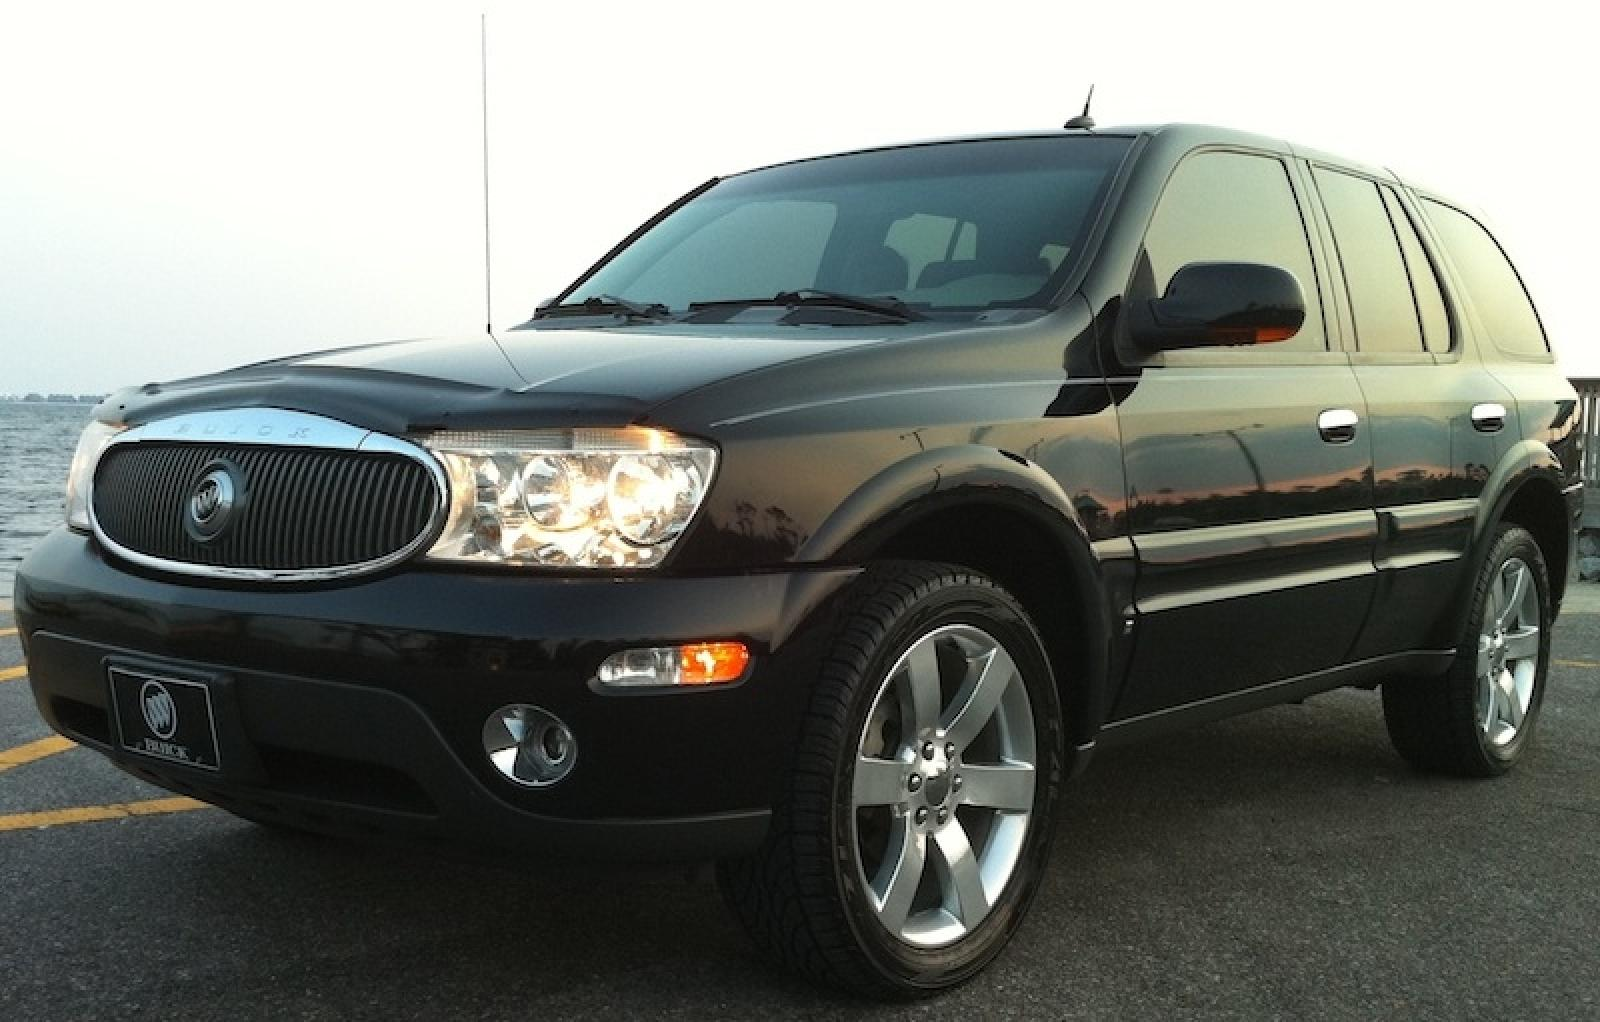 Dsc in addition Buick Rainier Dr Suv Cxl Fq Oem furthermore Large likewise Buick Rainier further . on buick rainier cxl